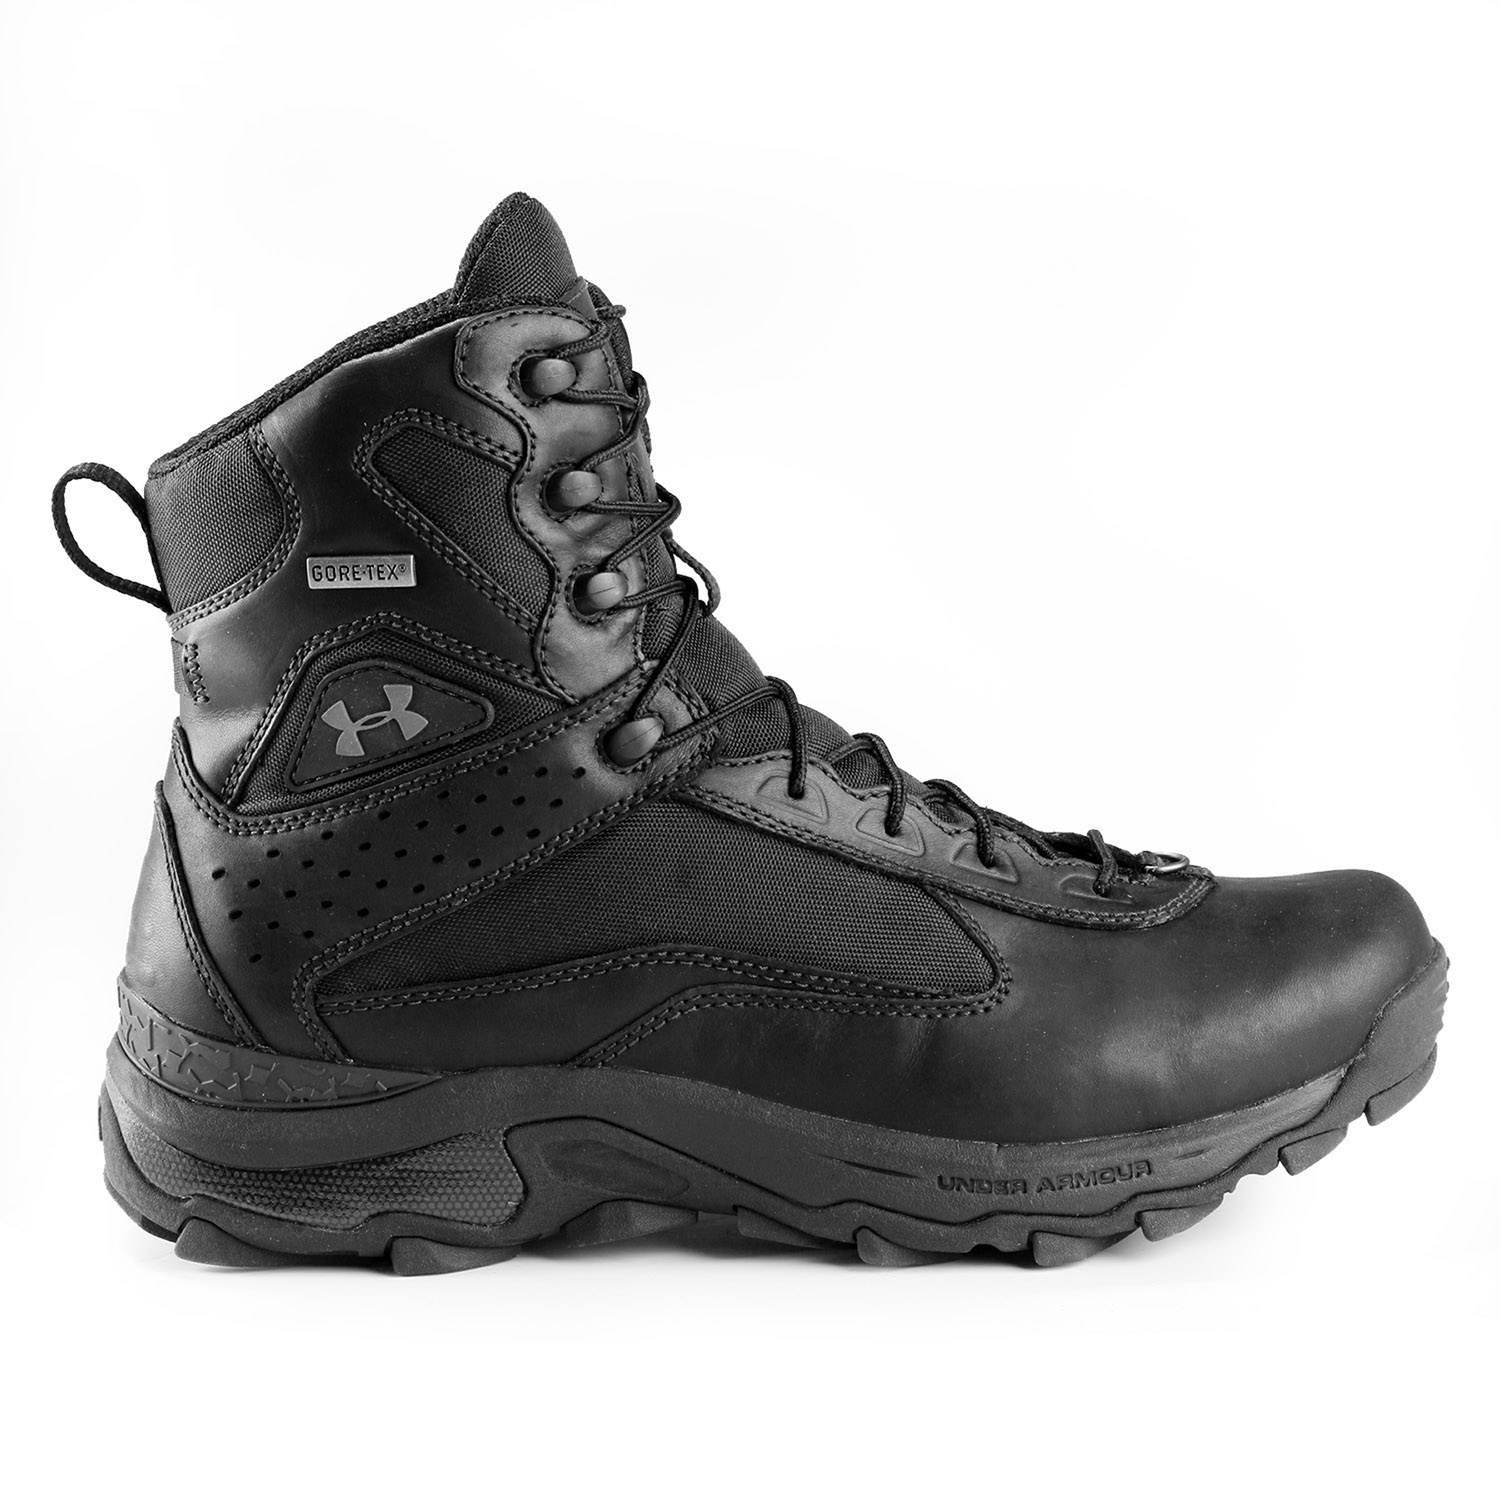 Under Armour Speedfreek 7 Inch Waterproof Duty Boot At Galls